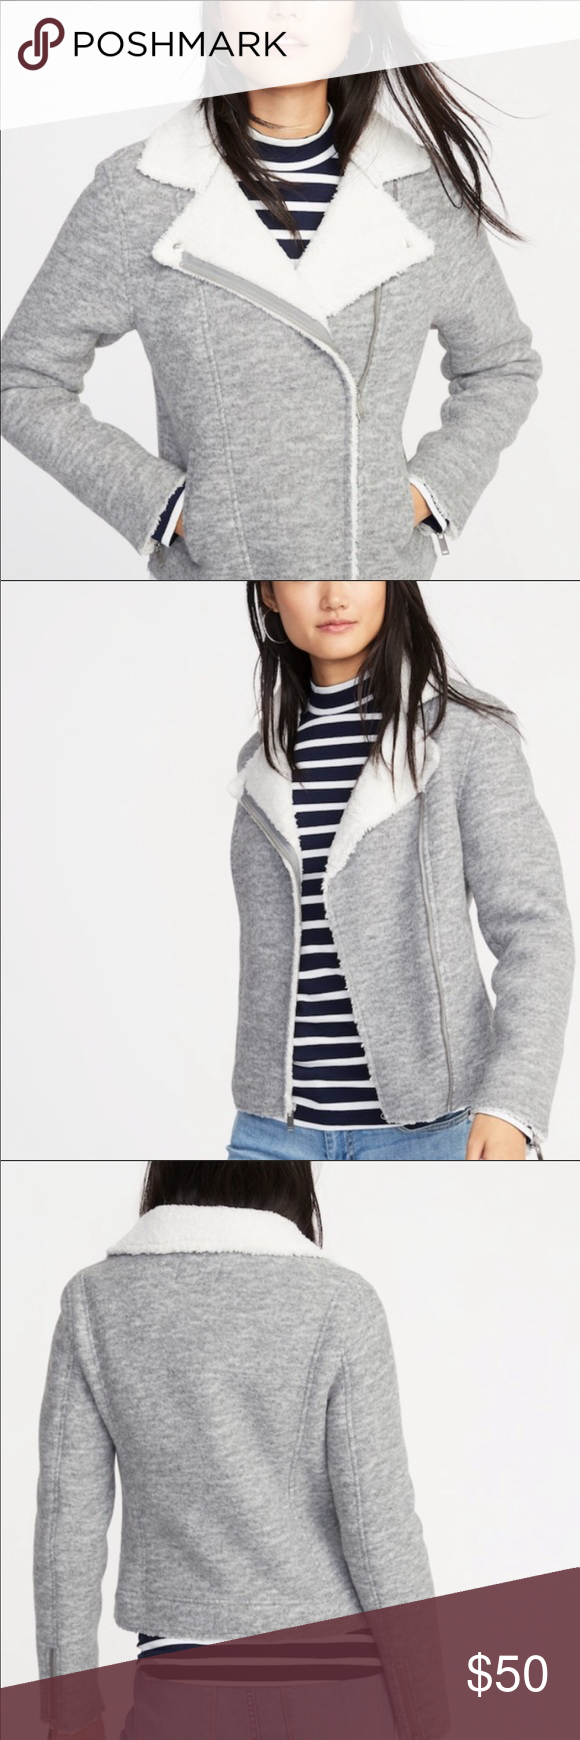 Old Navy Sherpa Moto Fleeced Jacket NWT (With images